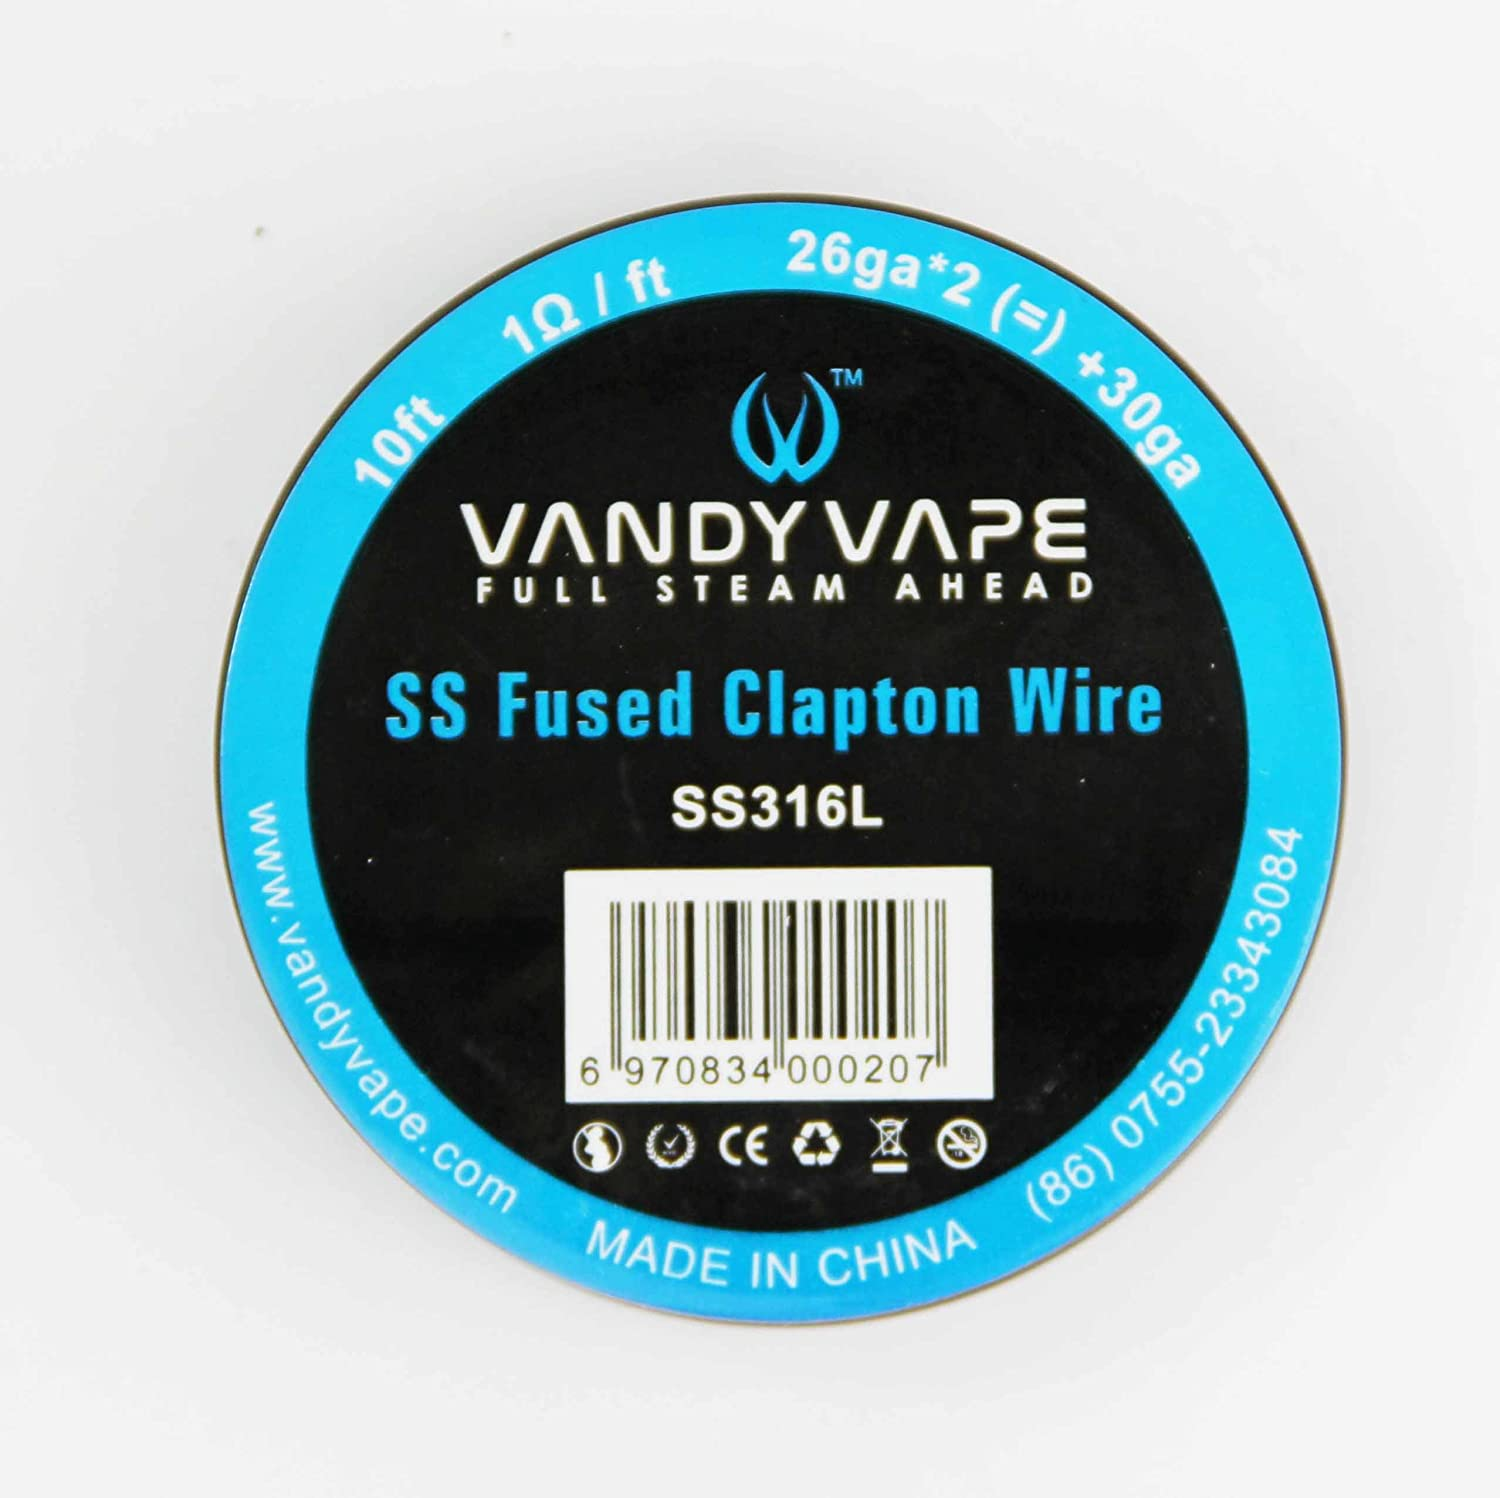 Clapton Fused Wire Ss316l 26awg X 2 30awg By Vandy Vape 3 Metre Wiring A Bathroom Pullcord Light Switch Diy Forums Spool Kitchen Home